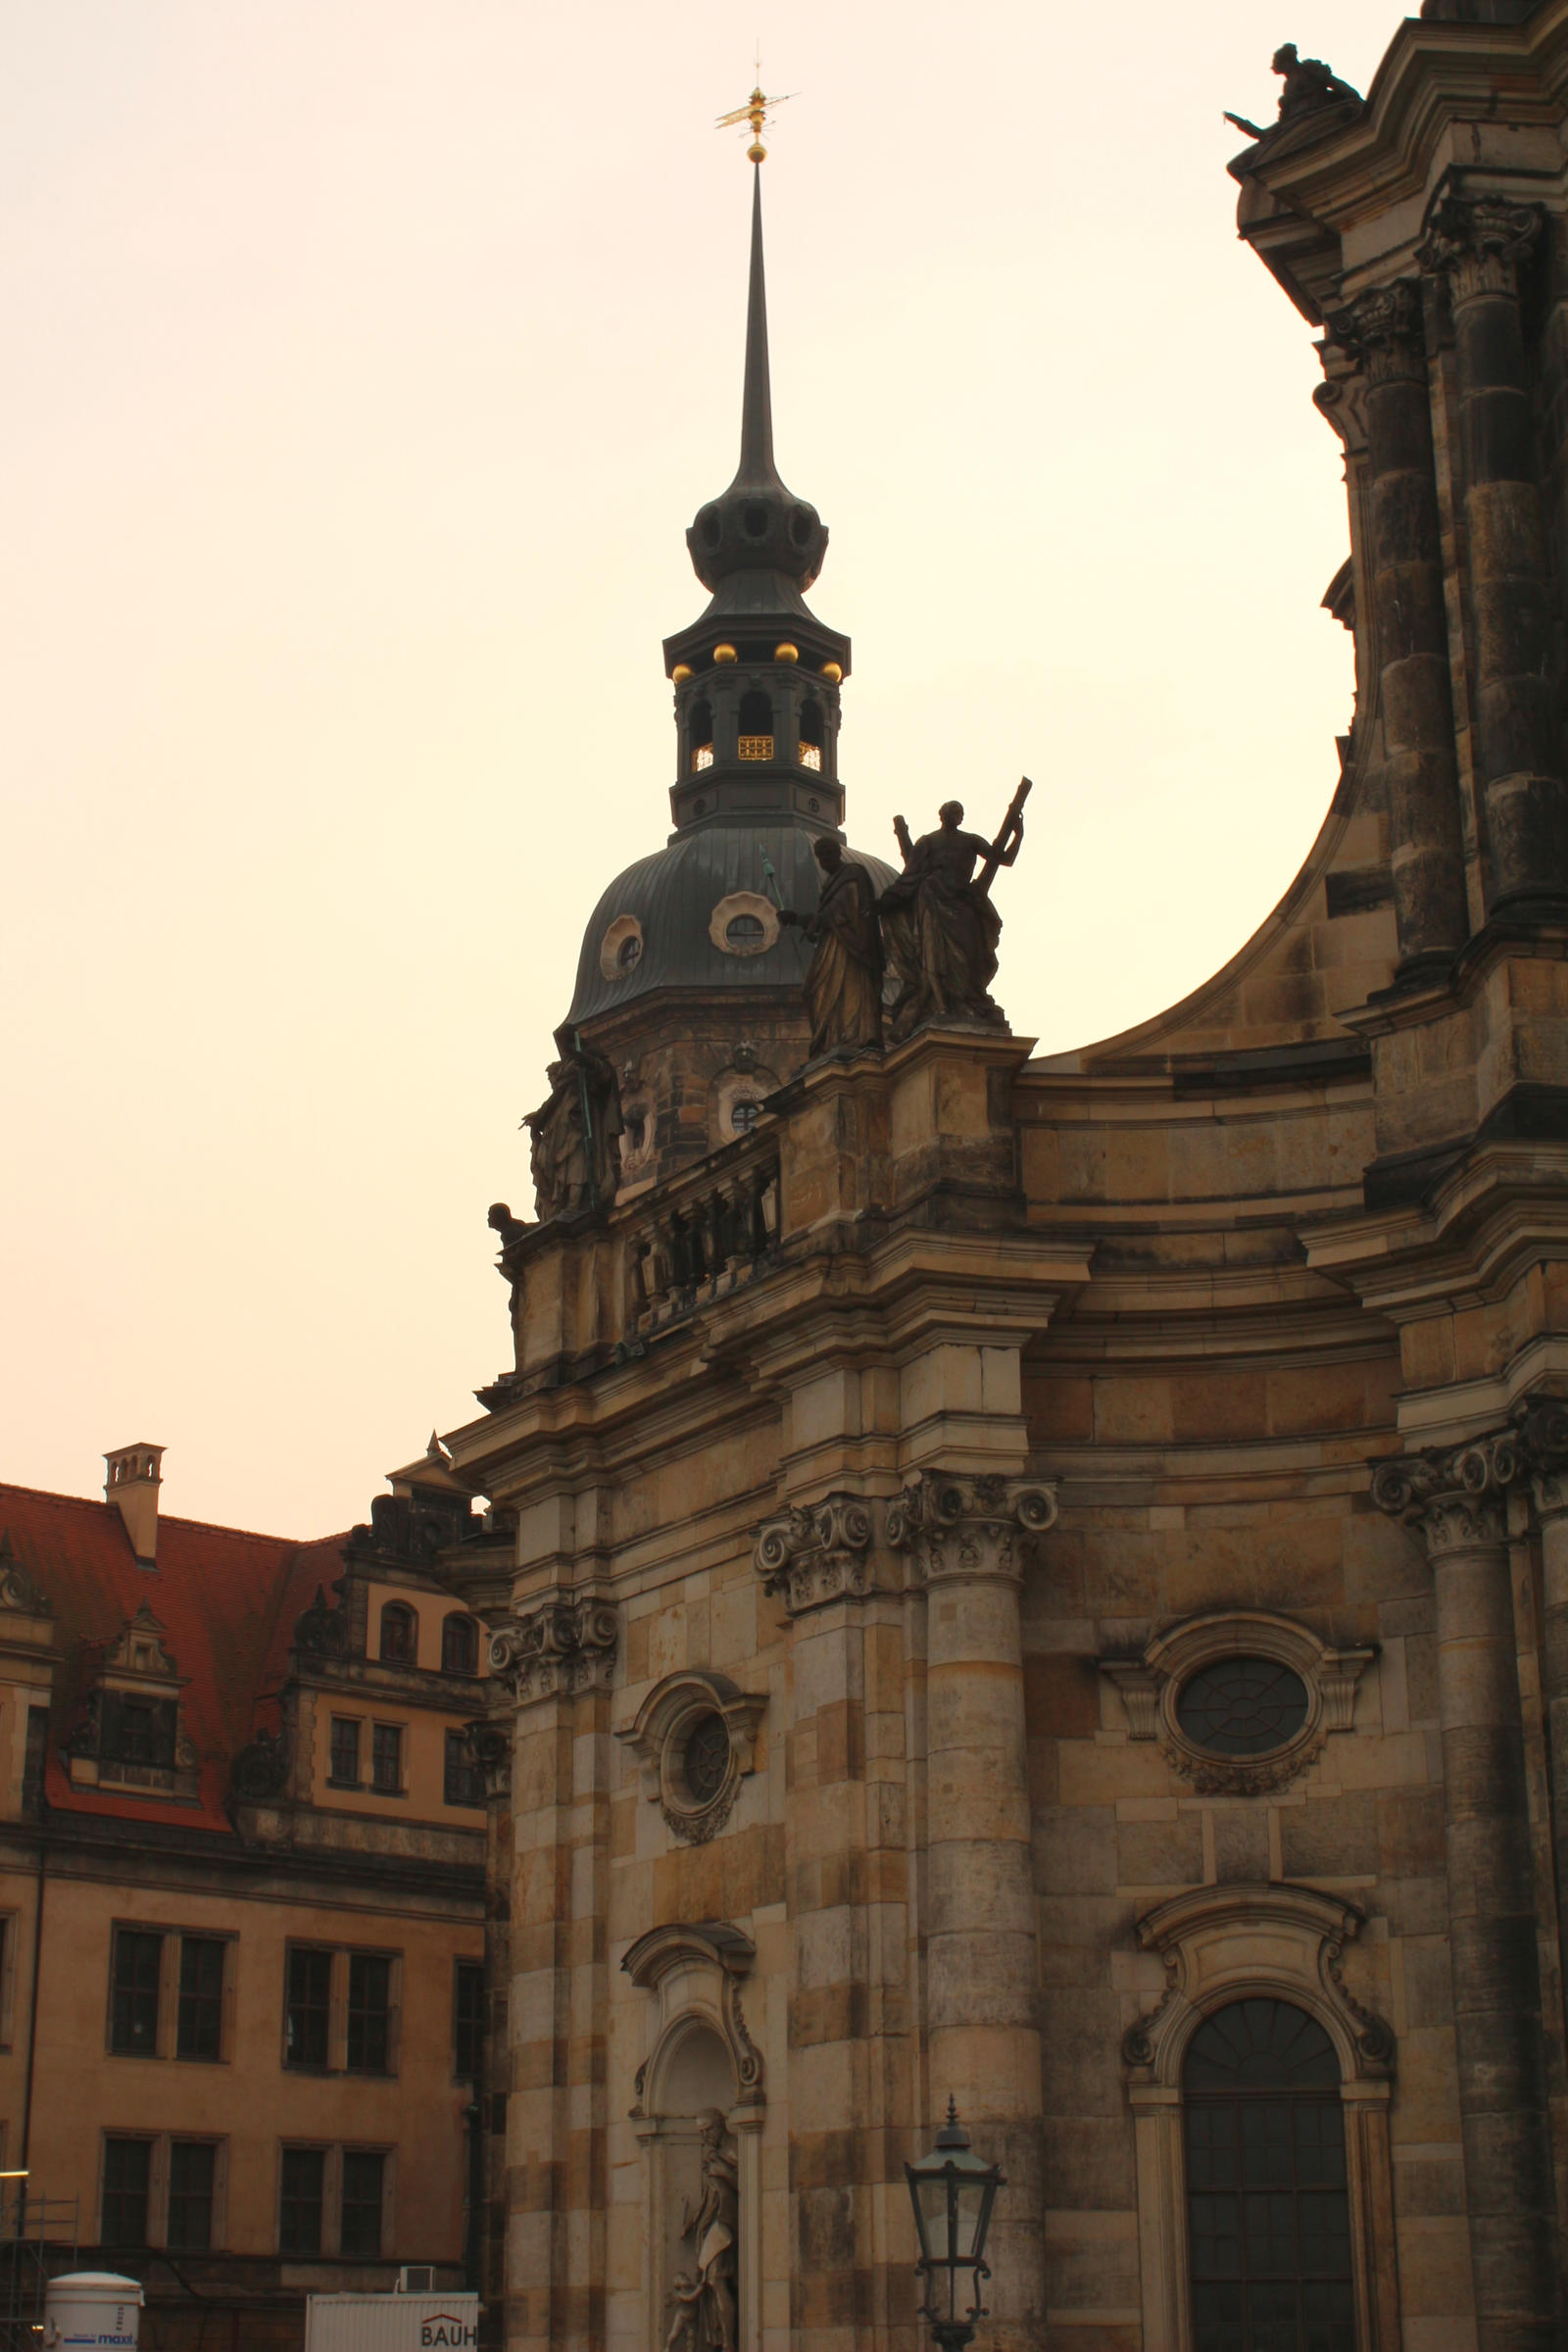 dresden: Part of Frauenkirche by LoveForDetails